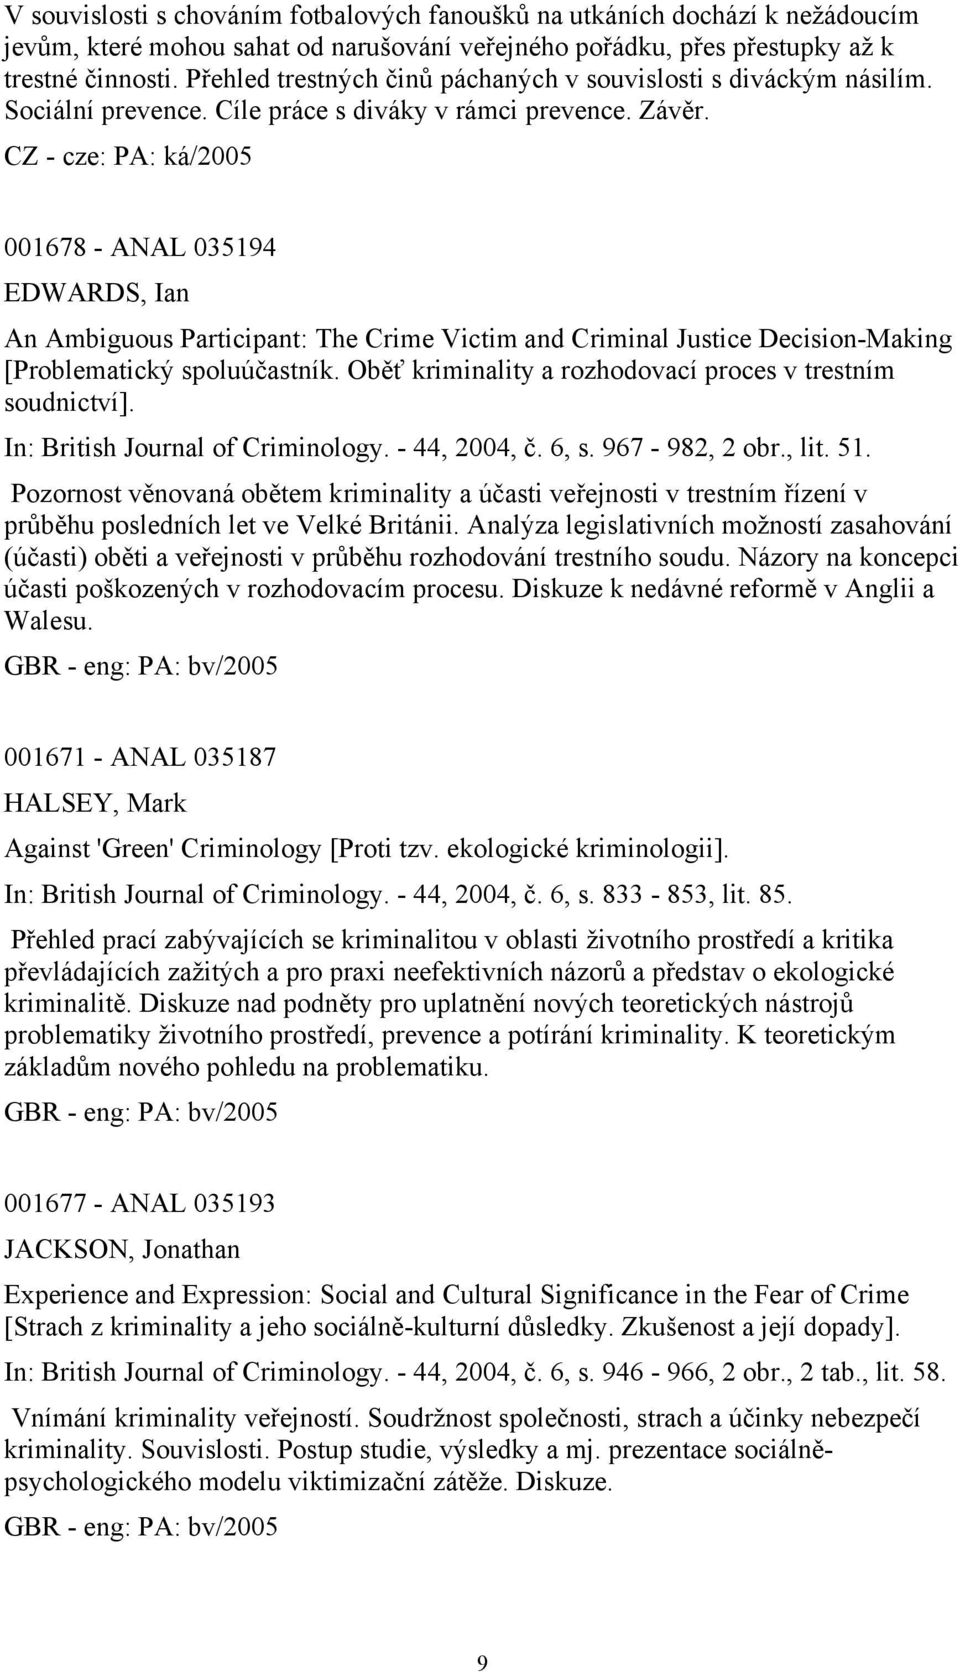 001678 - ANAL 035194 EDWARDS, Ian An Ambiguous Participant: The Crime Victim and Criminal Justice Decision-Making [Problematický spoluúčastník.